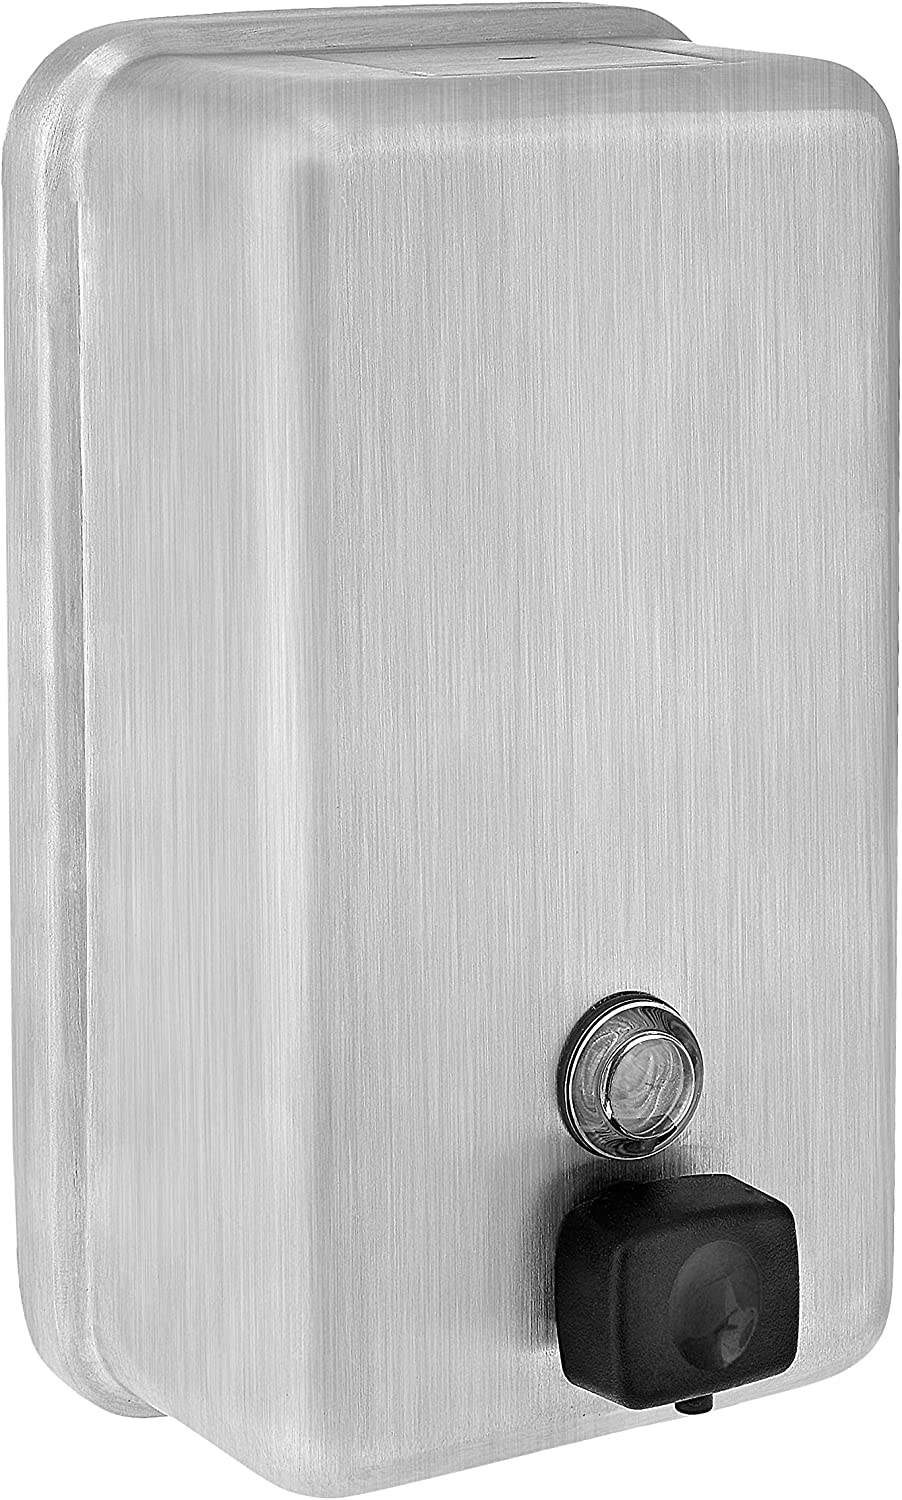 Alpine Industries Vertical Wall Mount Stainless Steel Soap Dispenser, Stainless Steel